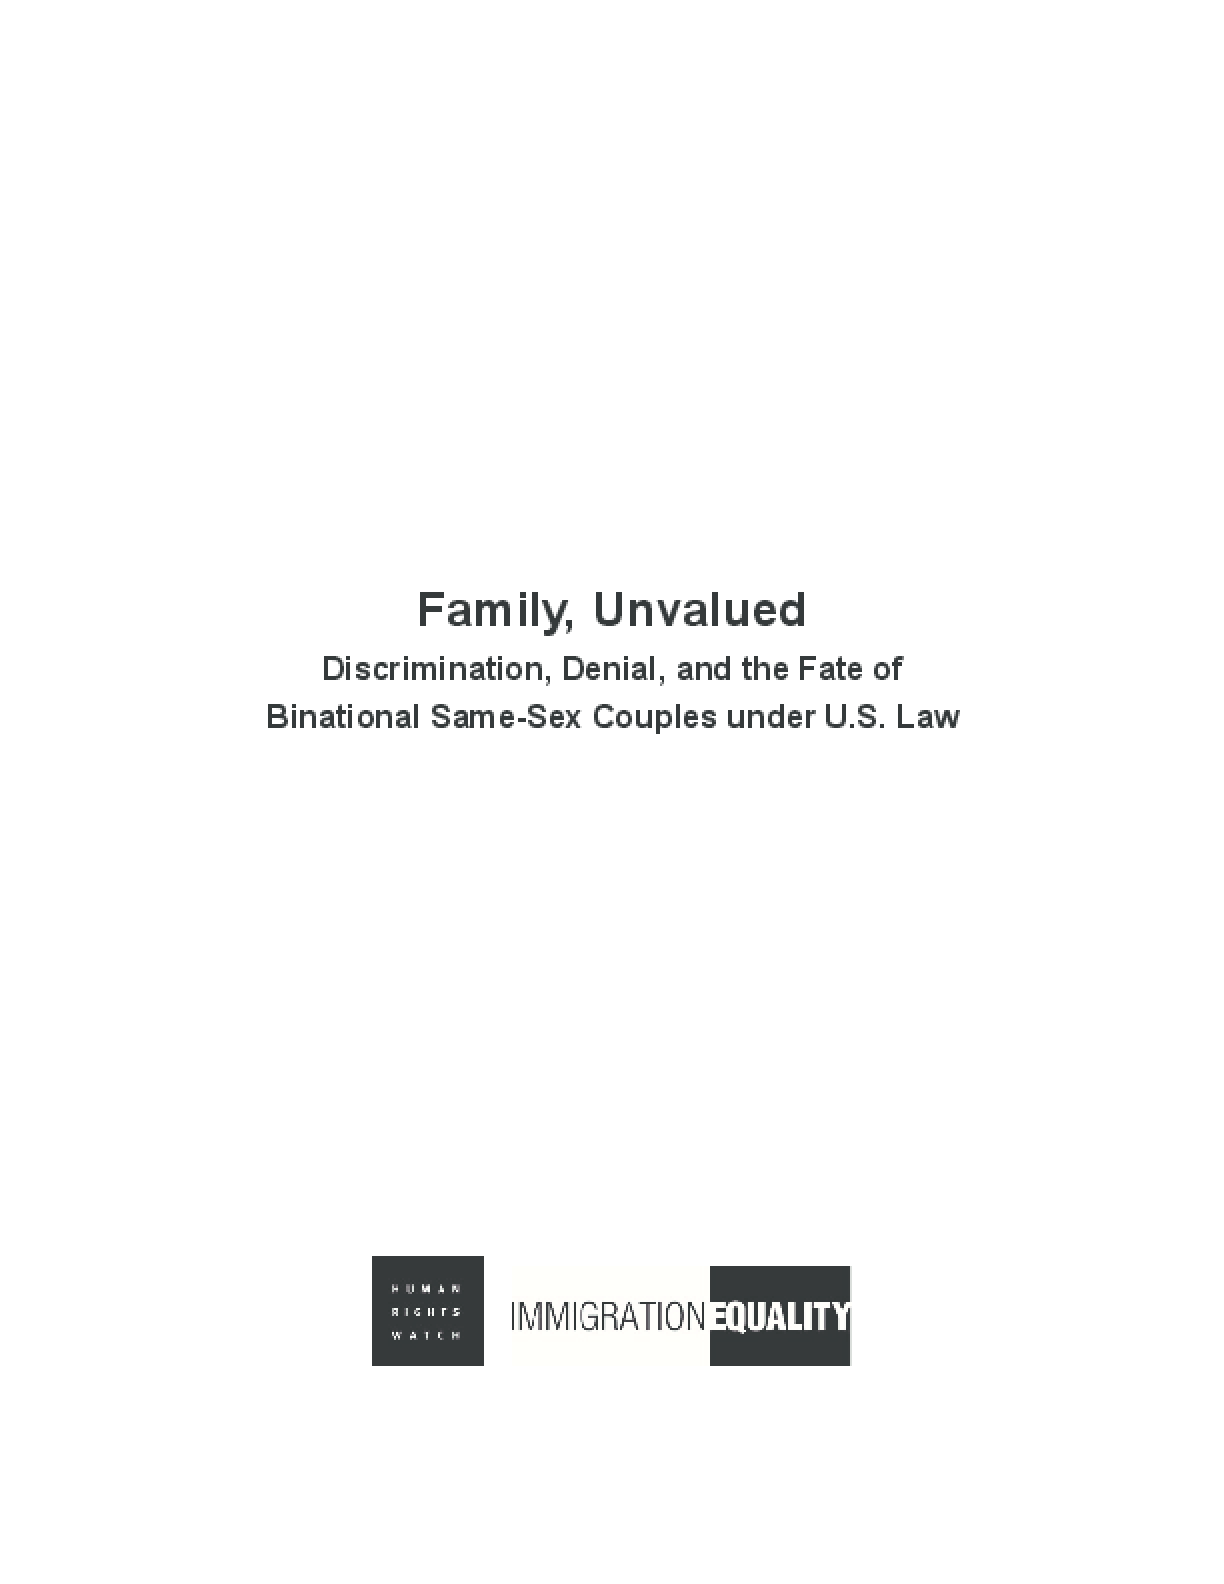 Family, Unvalued: Discrimination, Denial, and the Fate of Binational Same-Sex Couples under U.S. Law